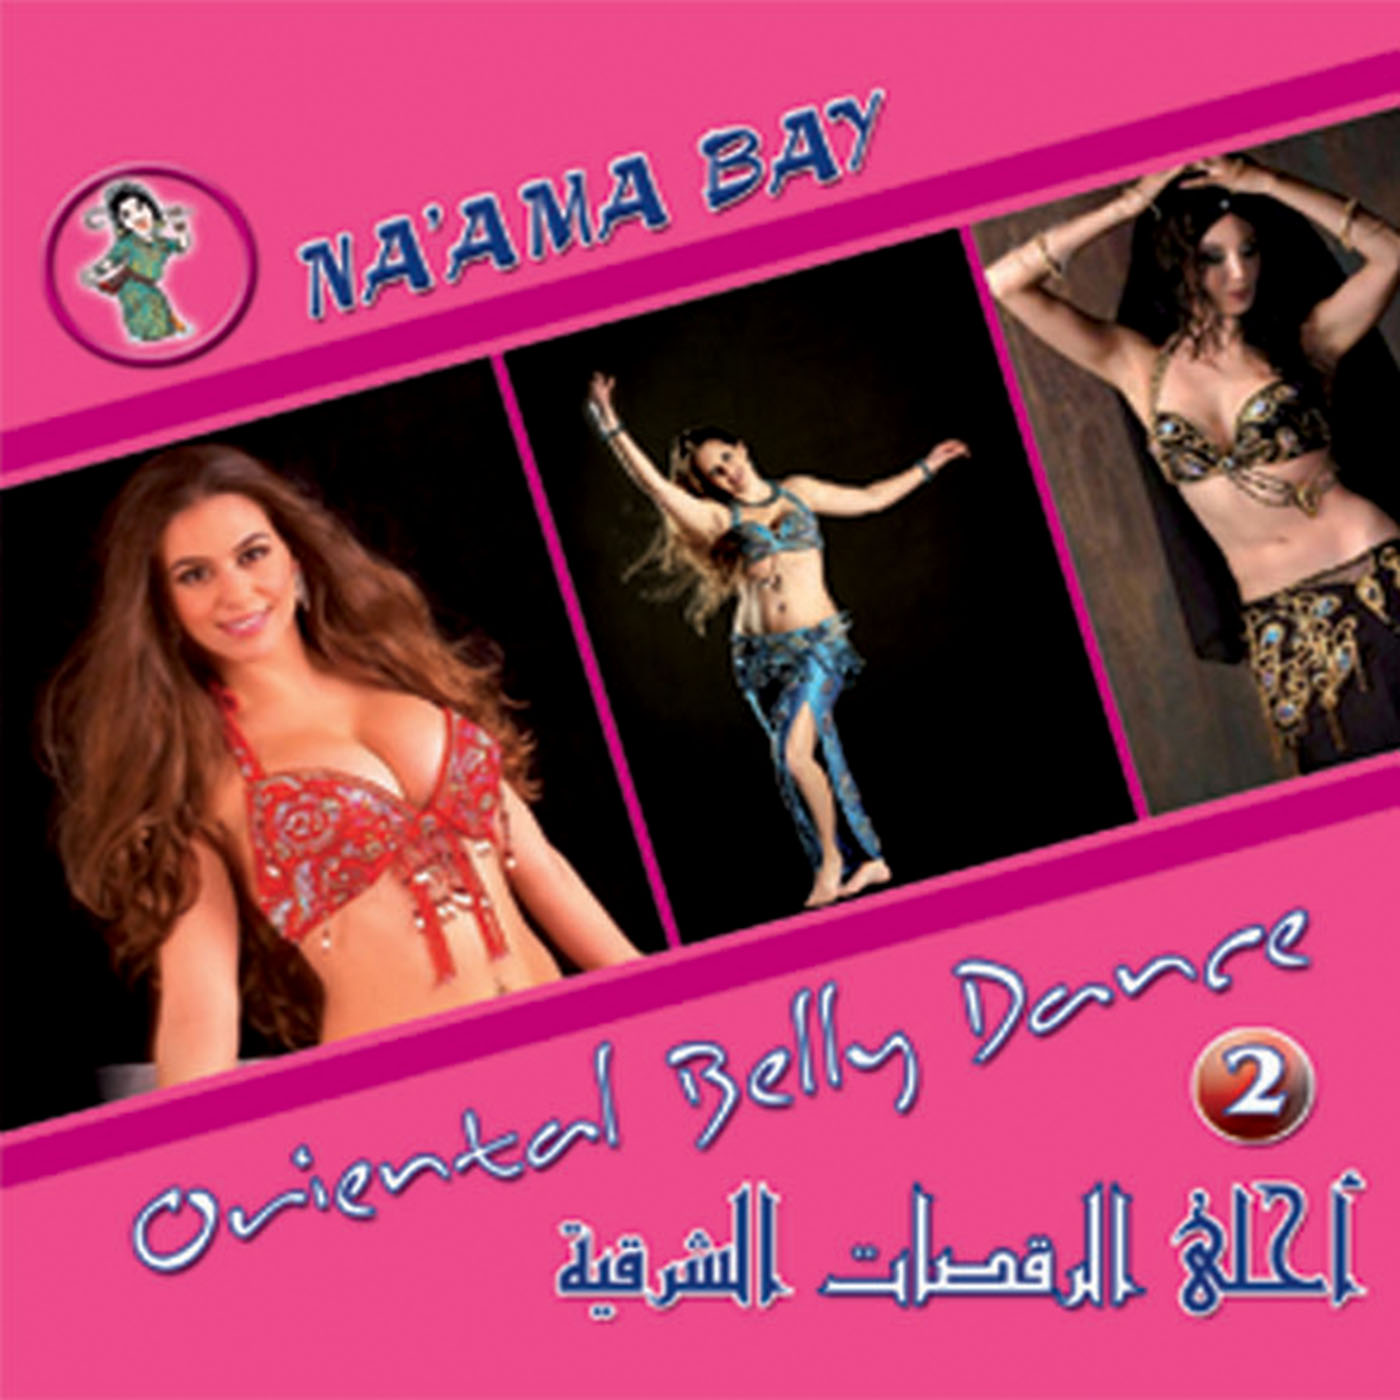 NA AMA BAY (Oriental Belly Dance 2 )/  VARIOUS ARTISTS    BUY IT